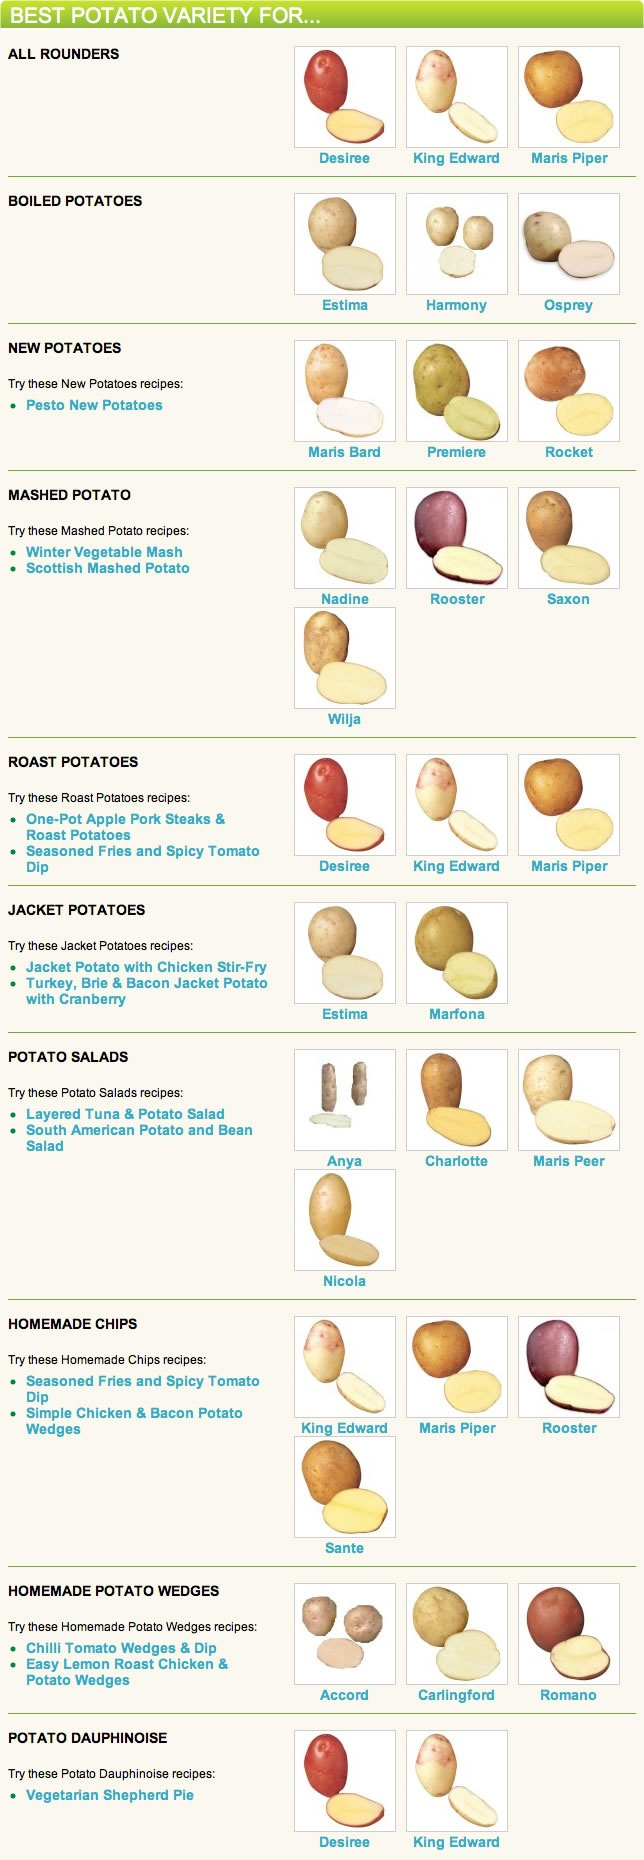 Potato varieties and their uses